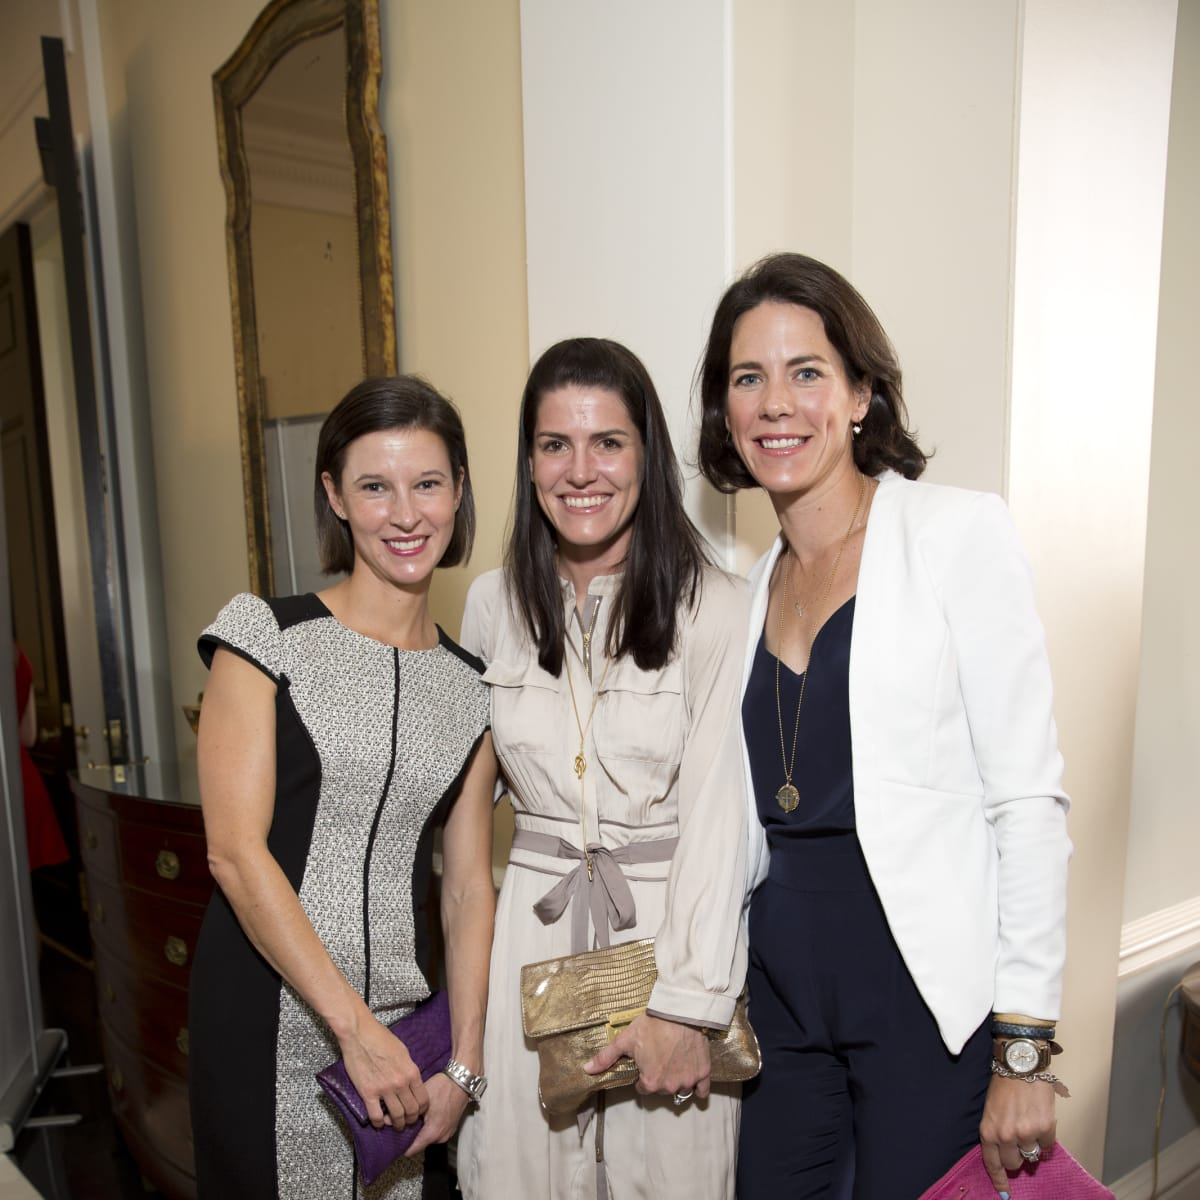 News, Shelby, Small Steps luncheon, Sept. 2015, Katie O'Donnell, Heidi O'Donnell, Helen Wright